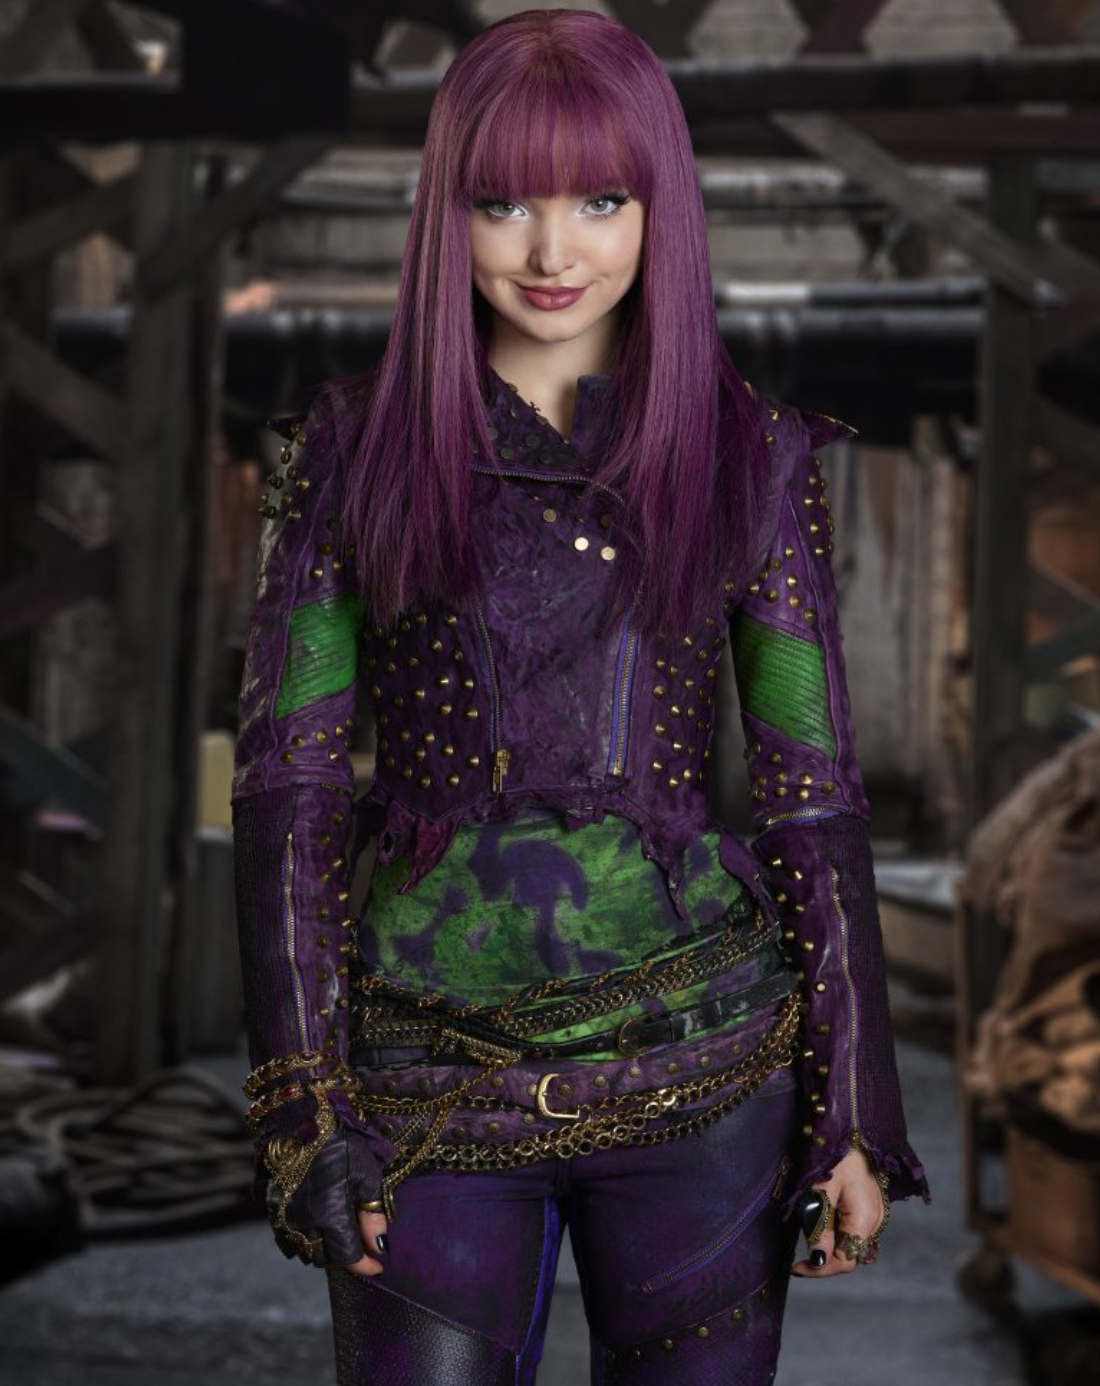 dove-cameron-interview-south-africa